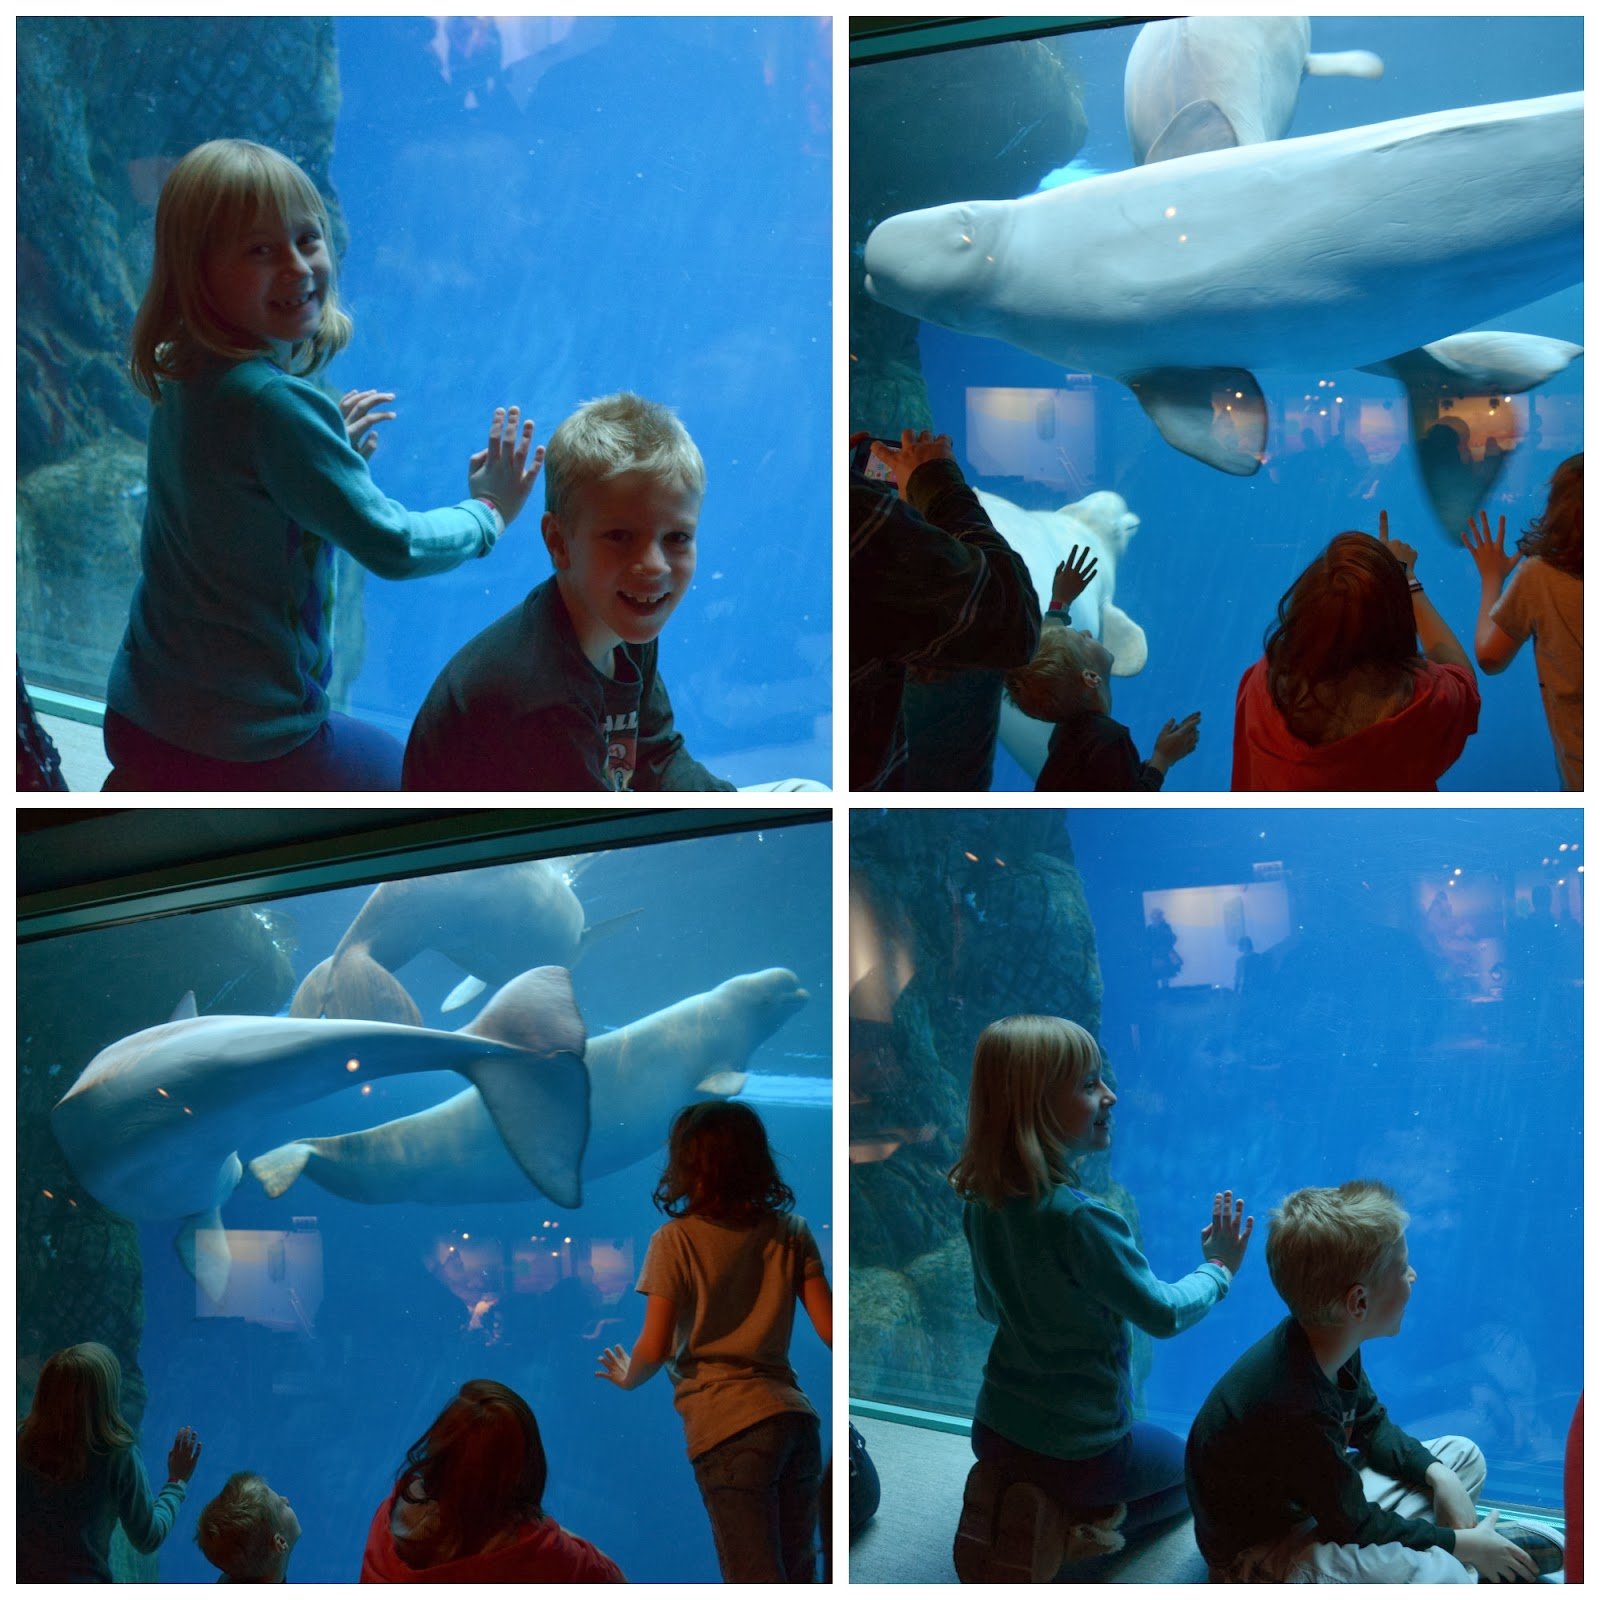 Beluga Whales in the Polar Play Zone at Shedd Aquarium in Chicago